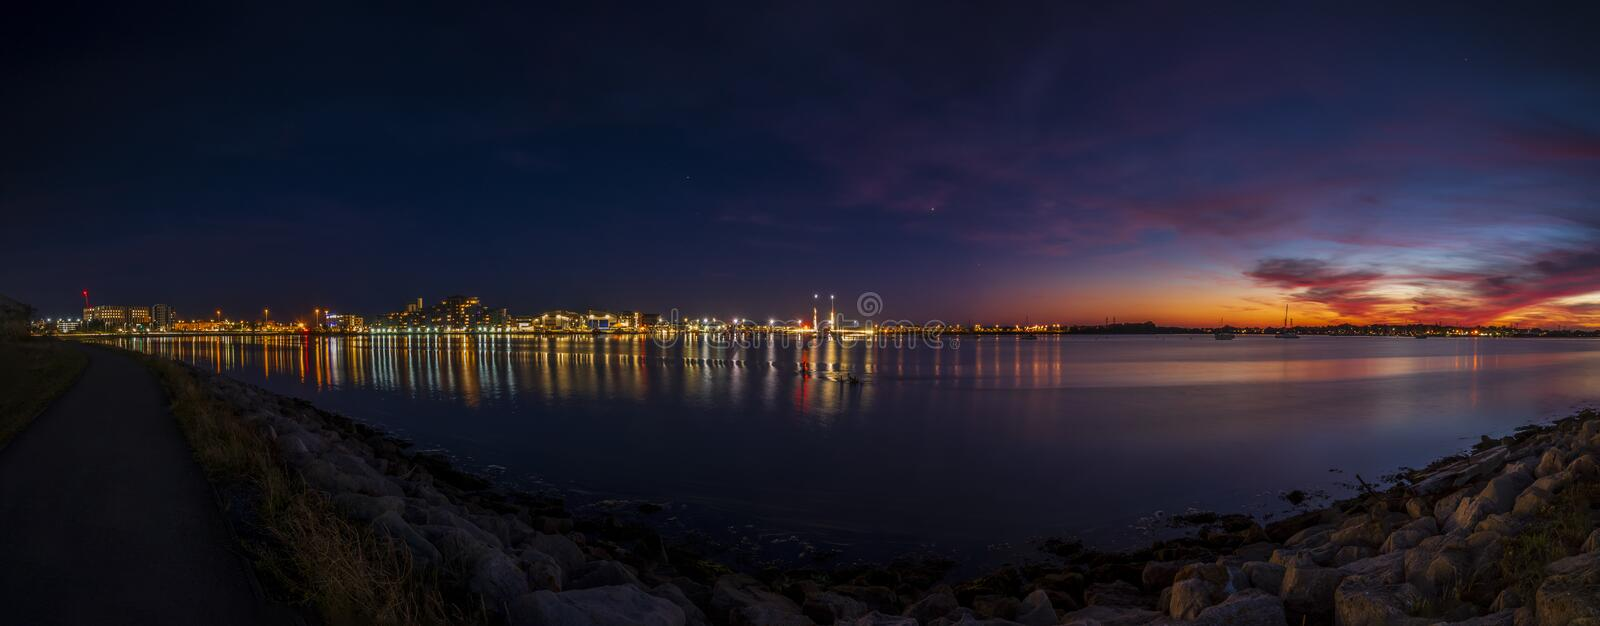 Twin sails bridge in Poole at sunset stock photography